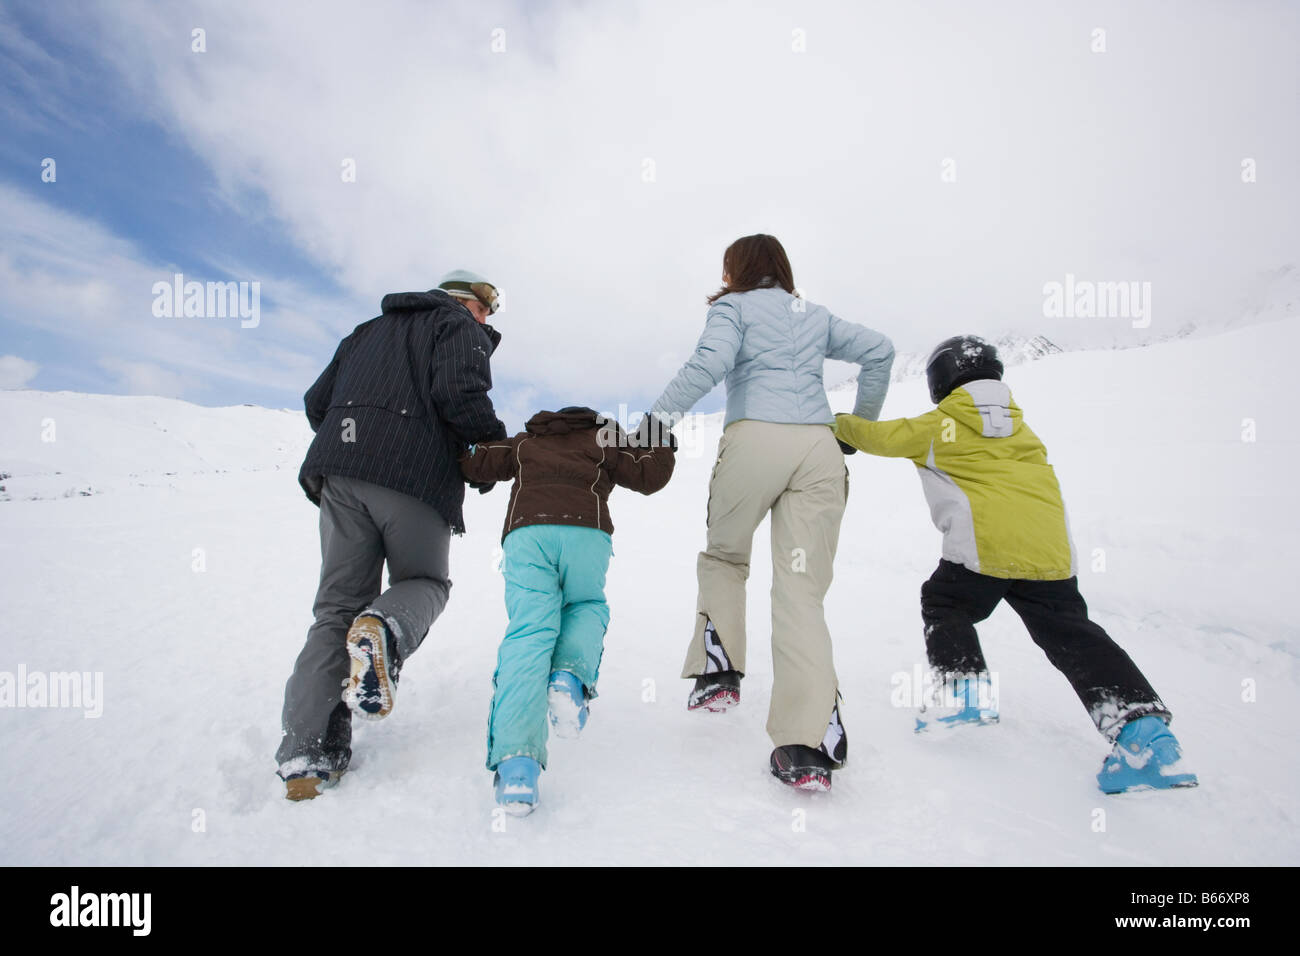 Family in the snow - Stock Image